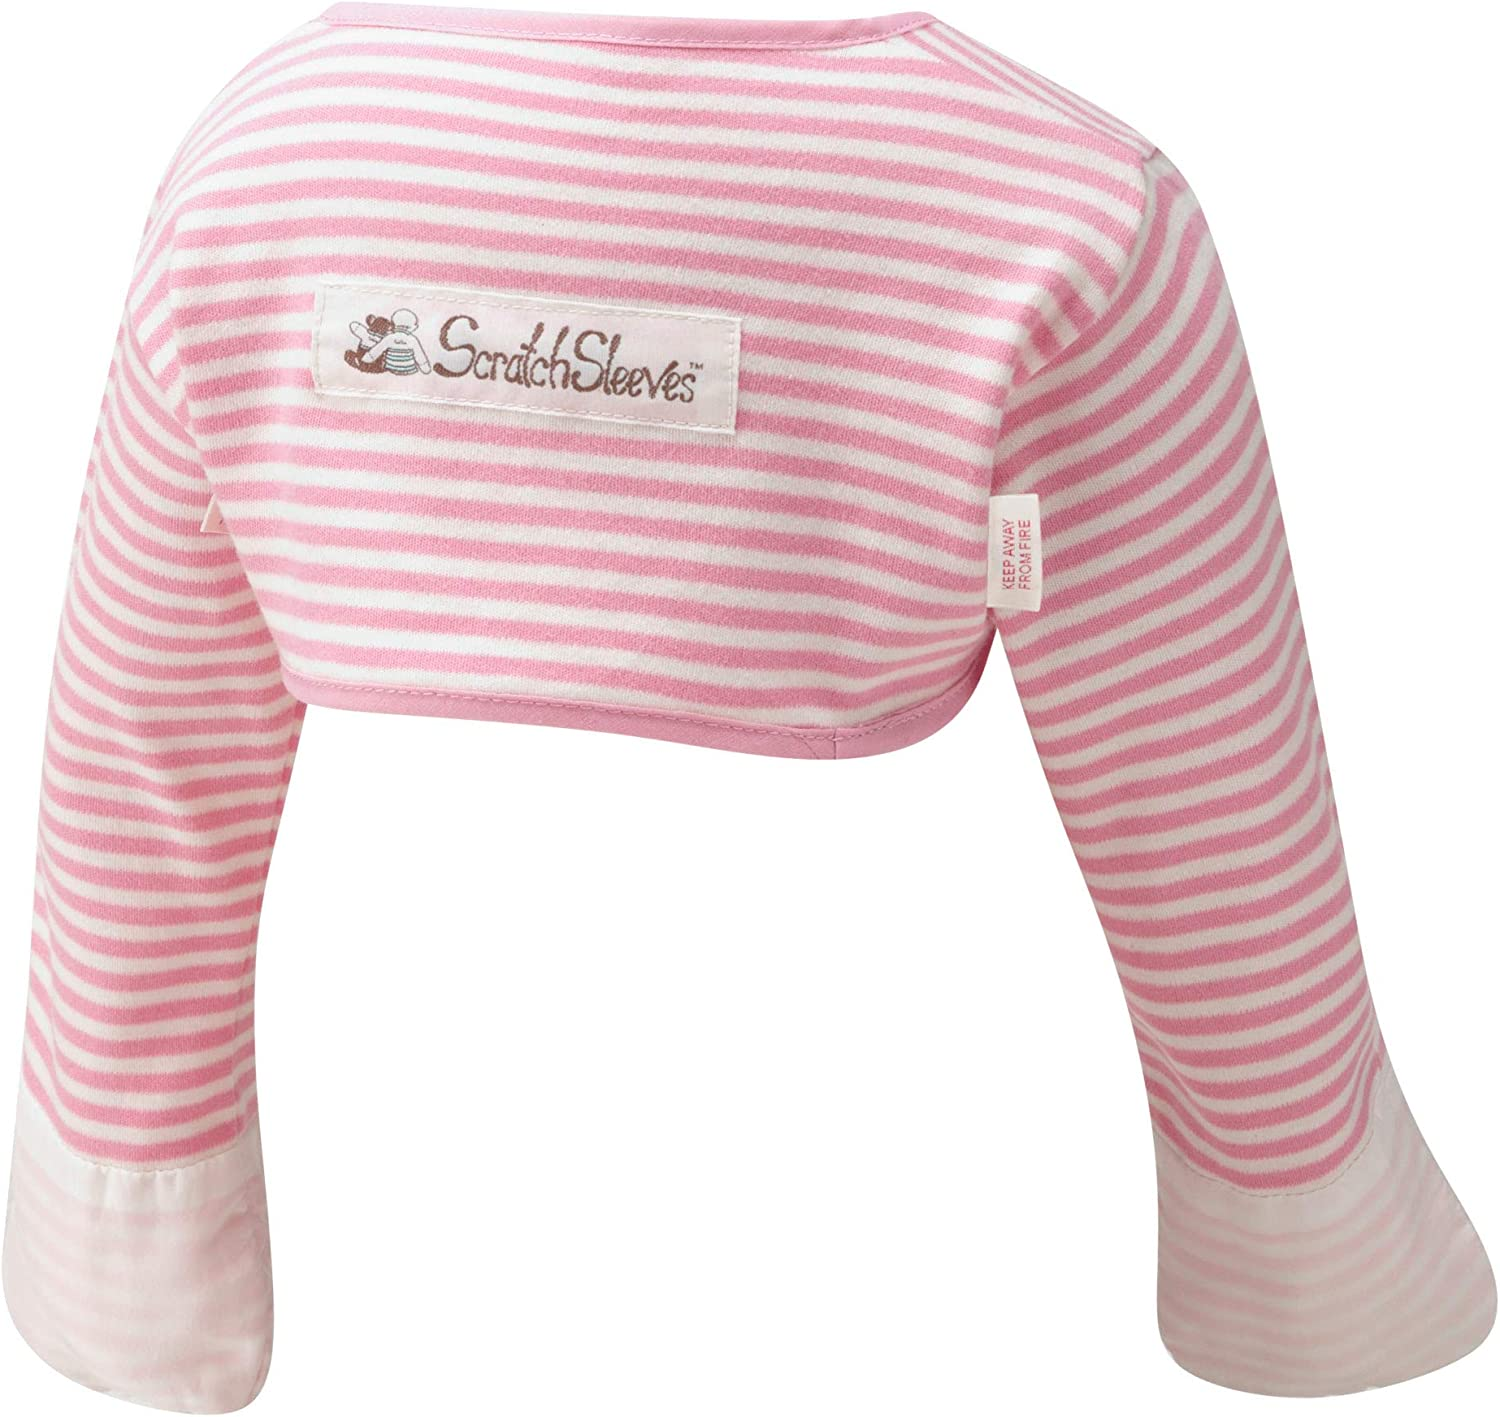 Stay-On Baby Scratch Mitts wingspan 24-26inches 3-6 months ScratchSleeves , Cream And Oatmeal